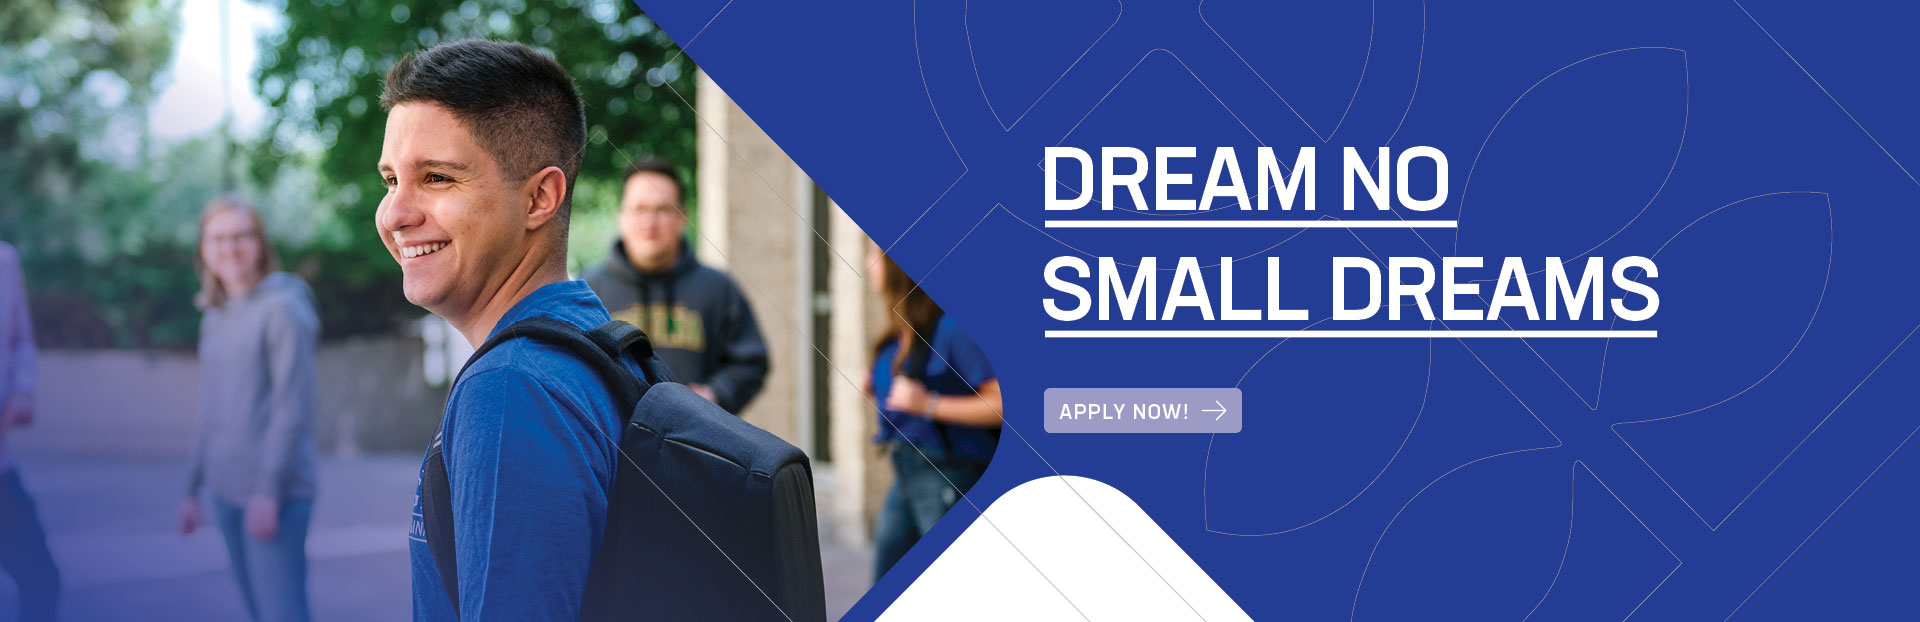 Apply Now Dream no small dreams Luther College at the U of R web banner